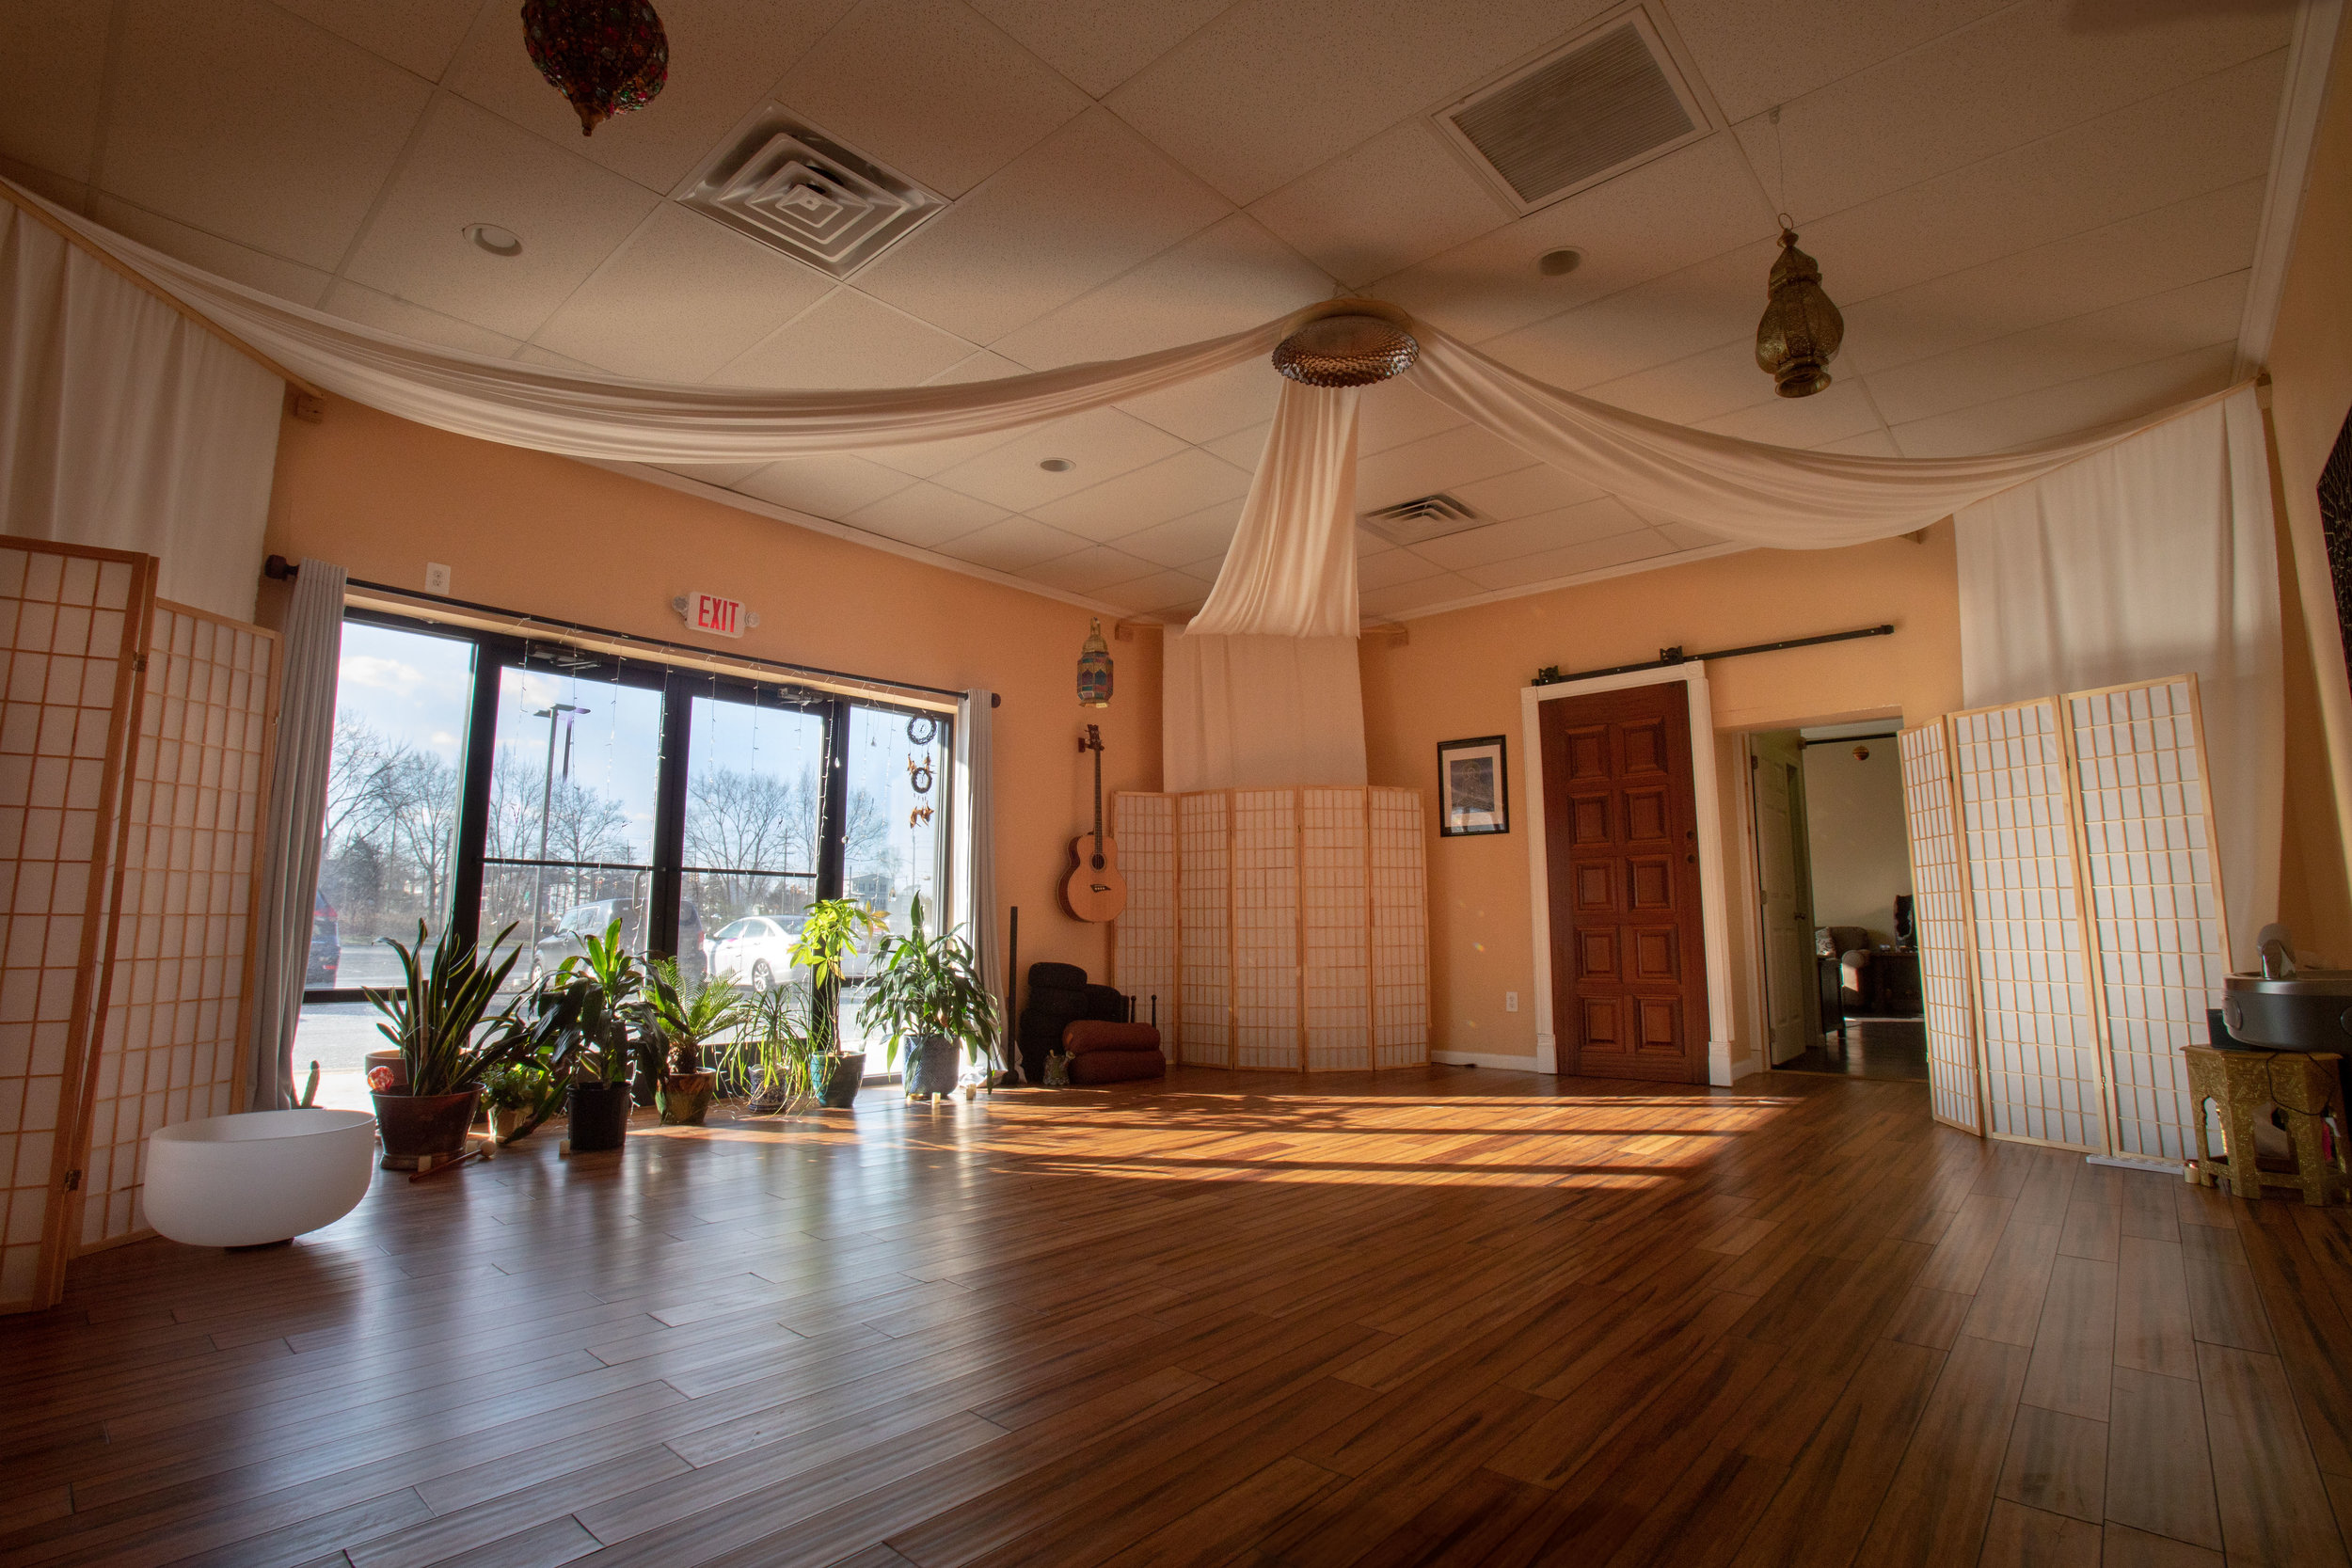 The Decor and Natural Lit Open Air in the Great Room at Float SNJ